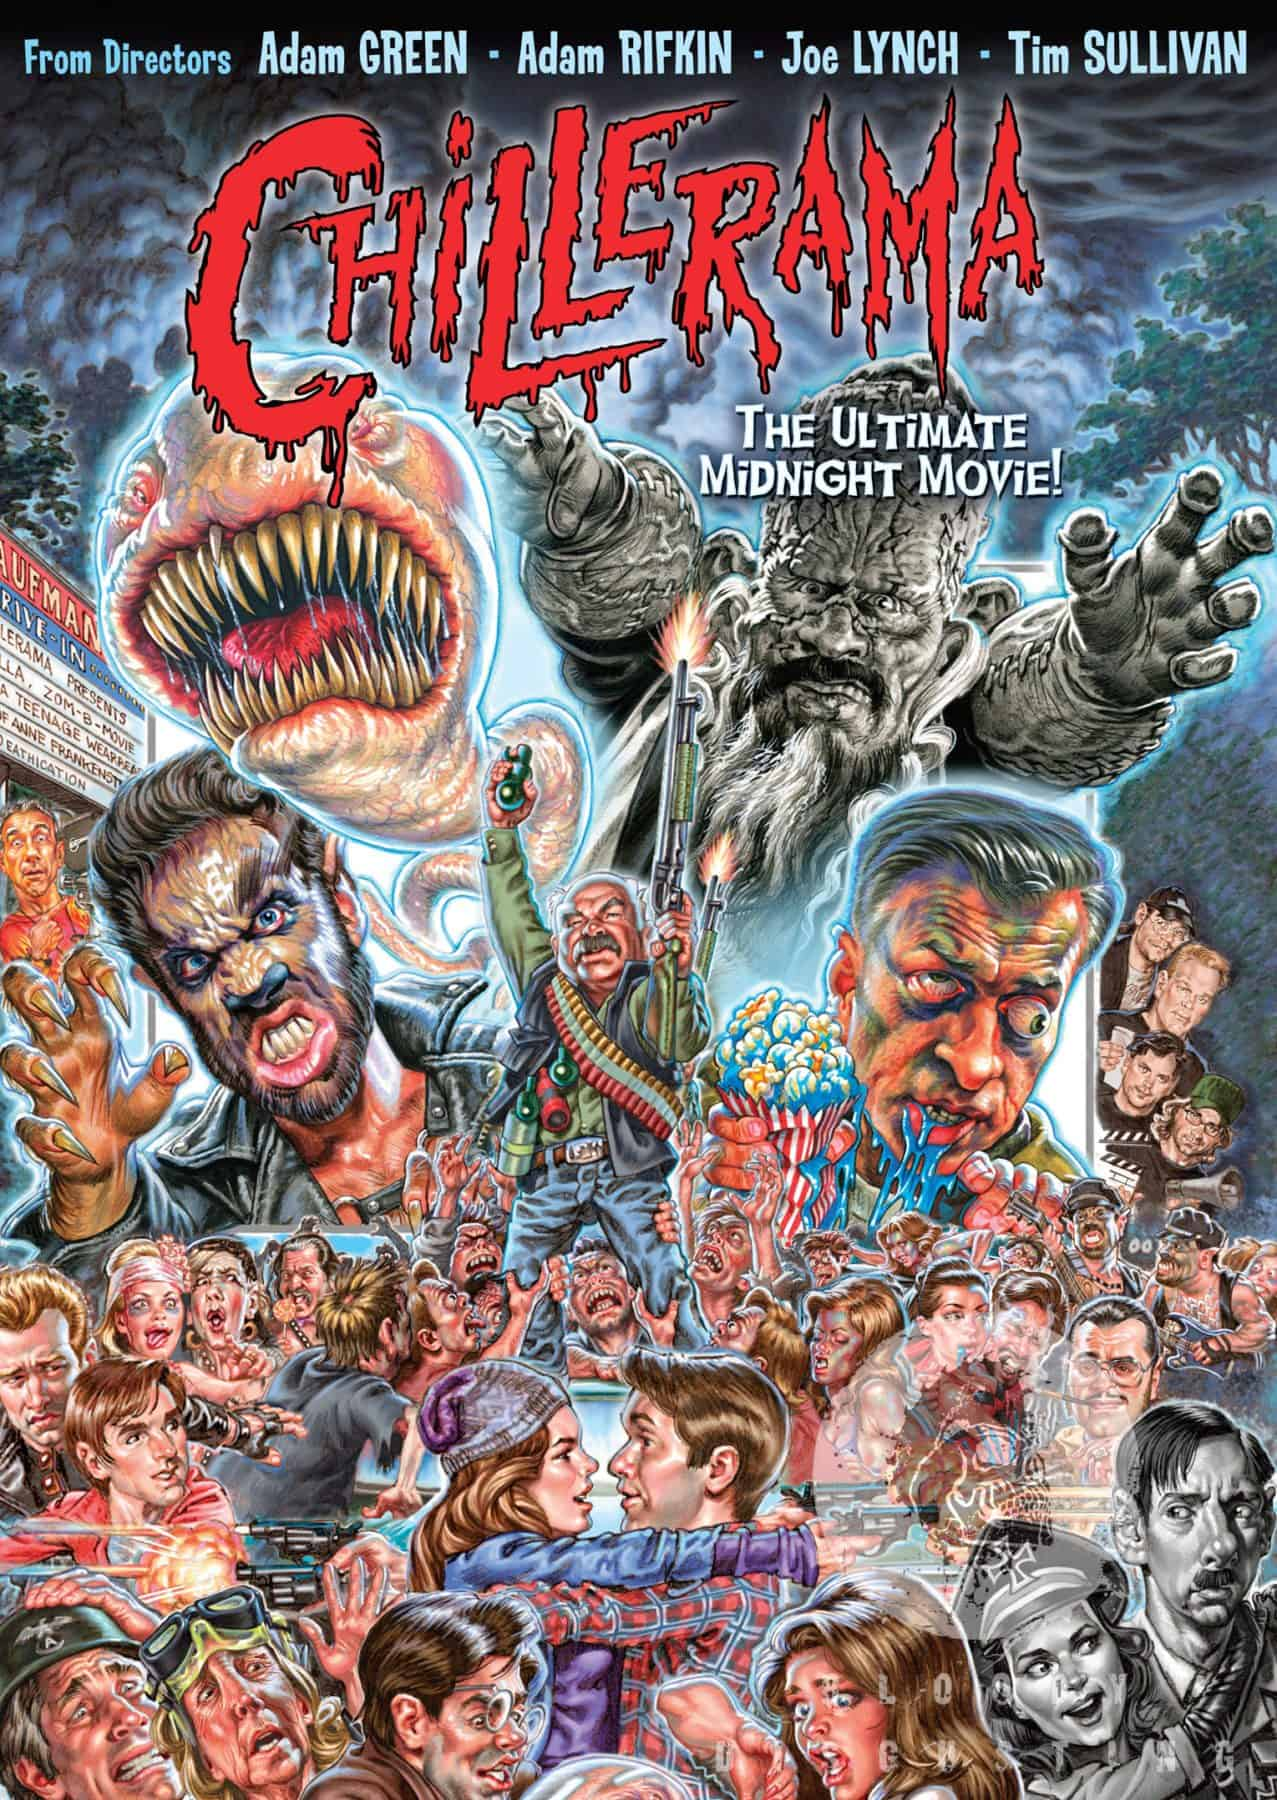 Horror Movie Review: Chillerama (2011)